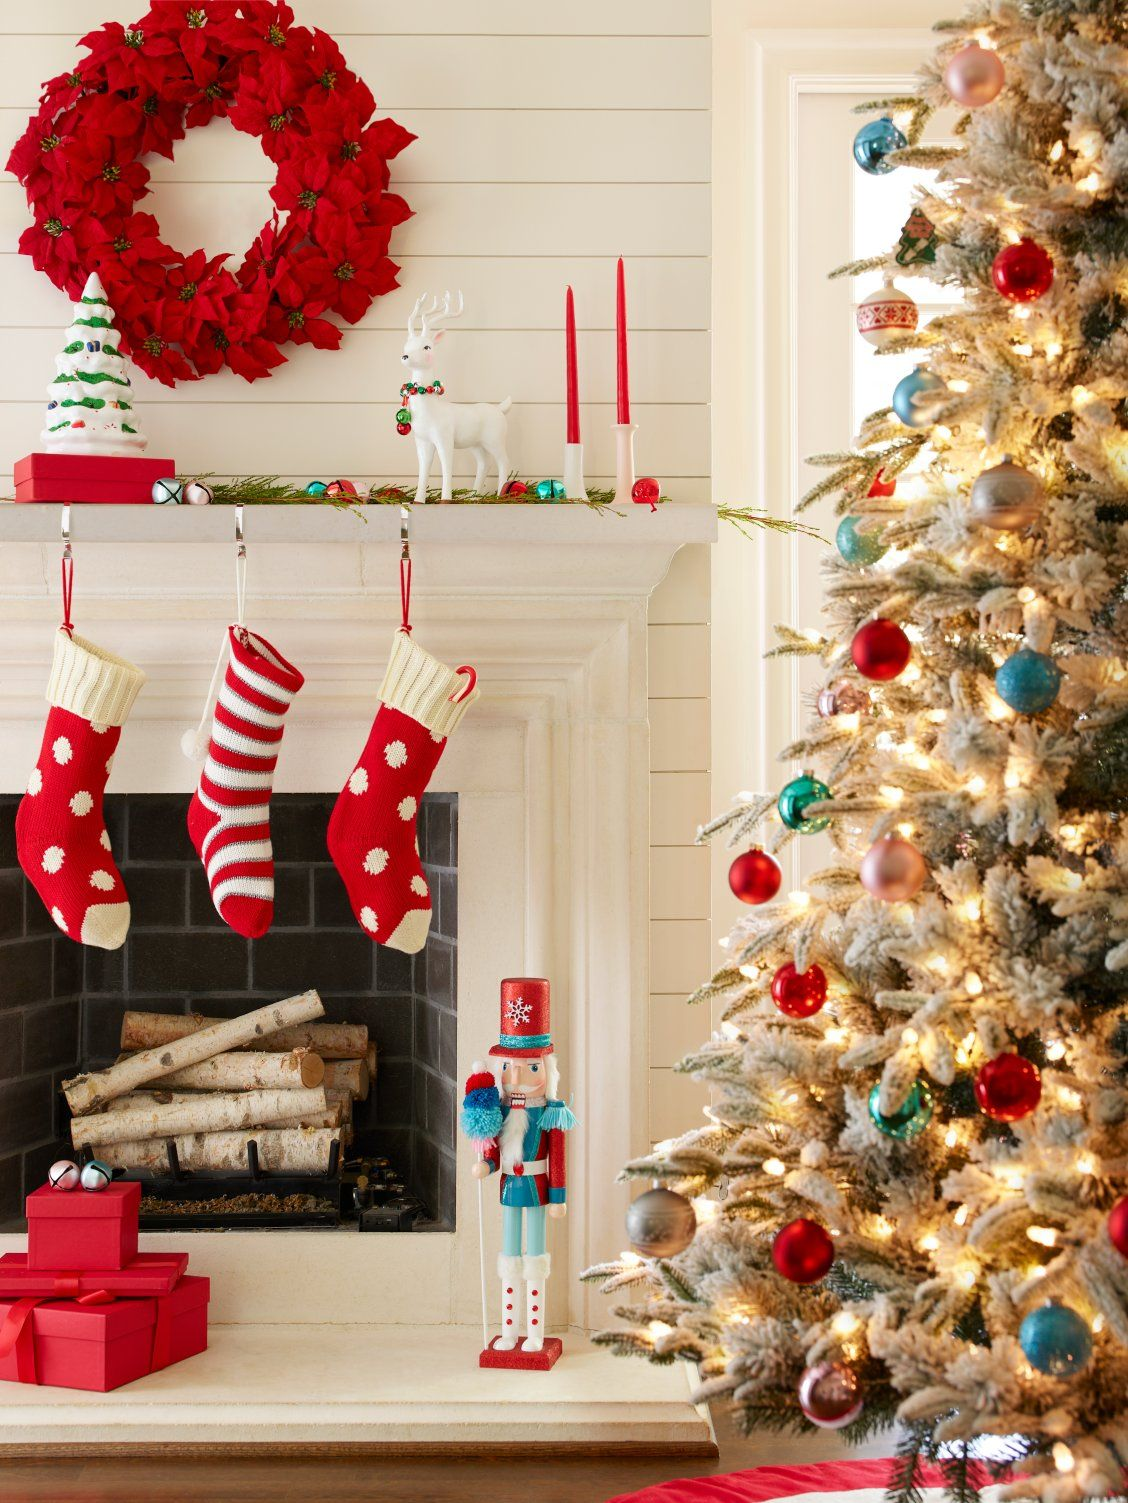 Delight Family And Friends This Season With Fun Christmas Mantel Decorating Ideas Indoor Christmas Decorations Indoor Christmas Christmas Mantel Decorations